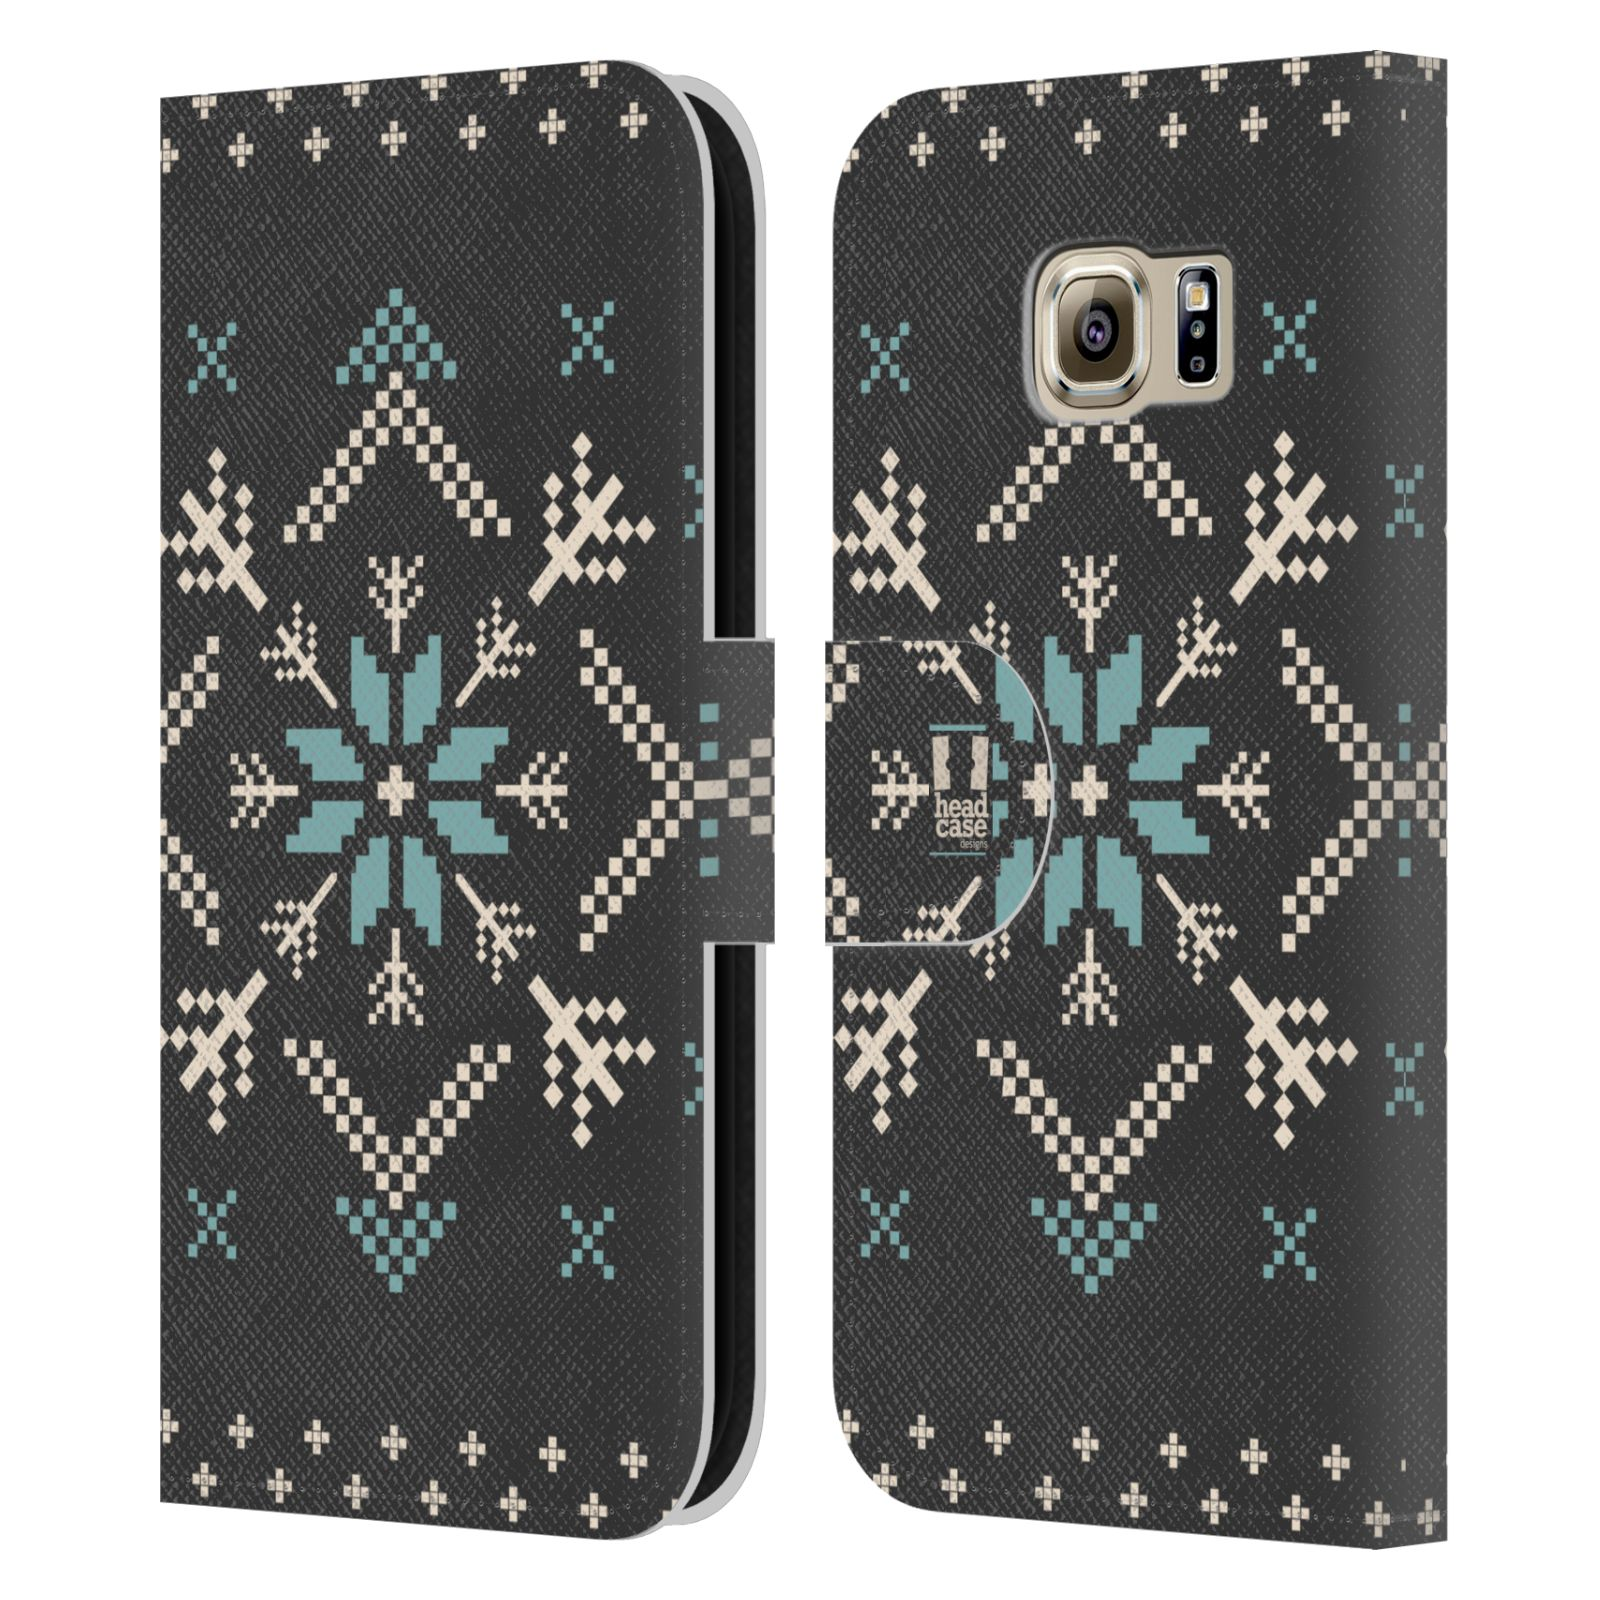 Cell Phones u0026 Accessories u0026gt; Cell Phone Accessories u0026gt; Cases, Covers ...